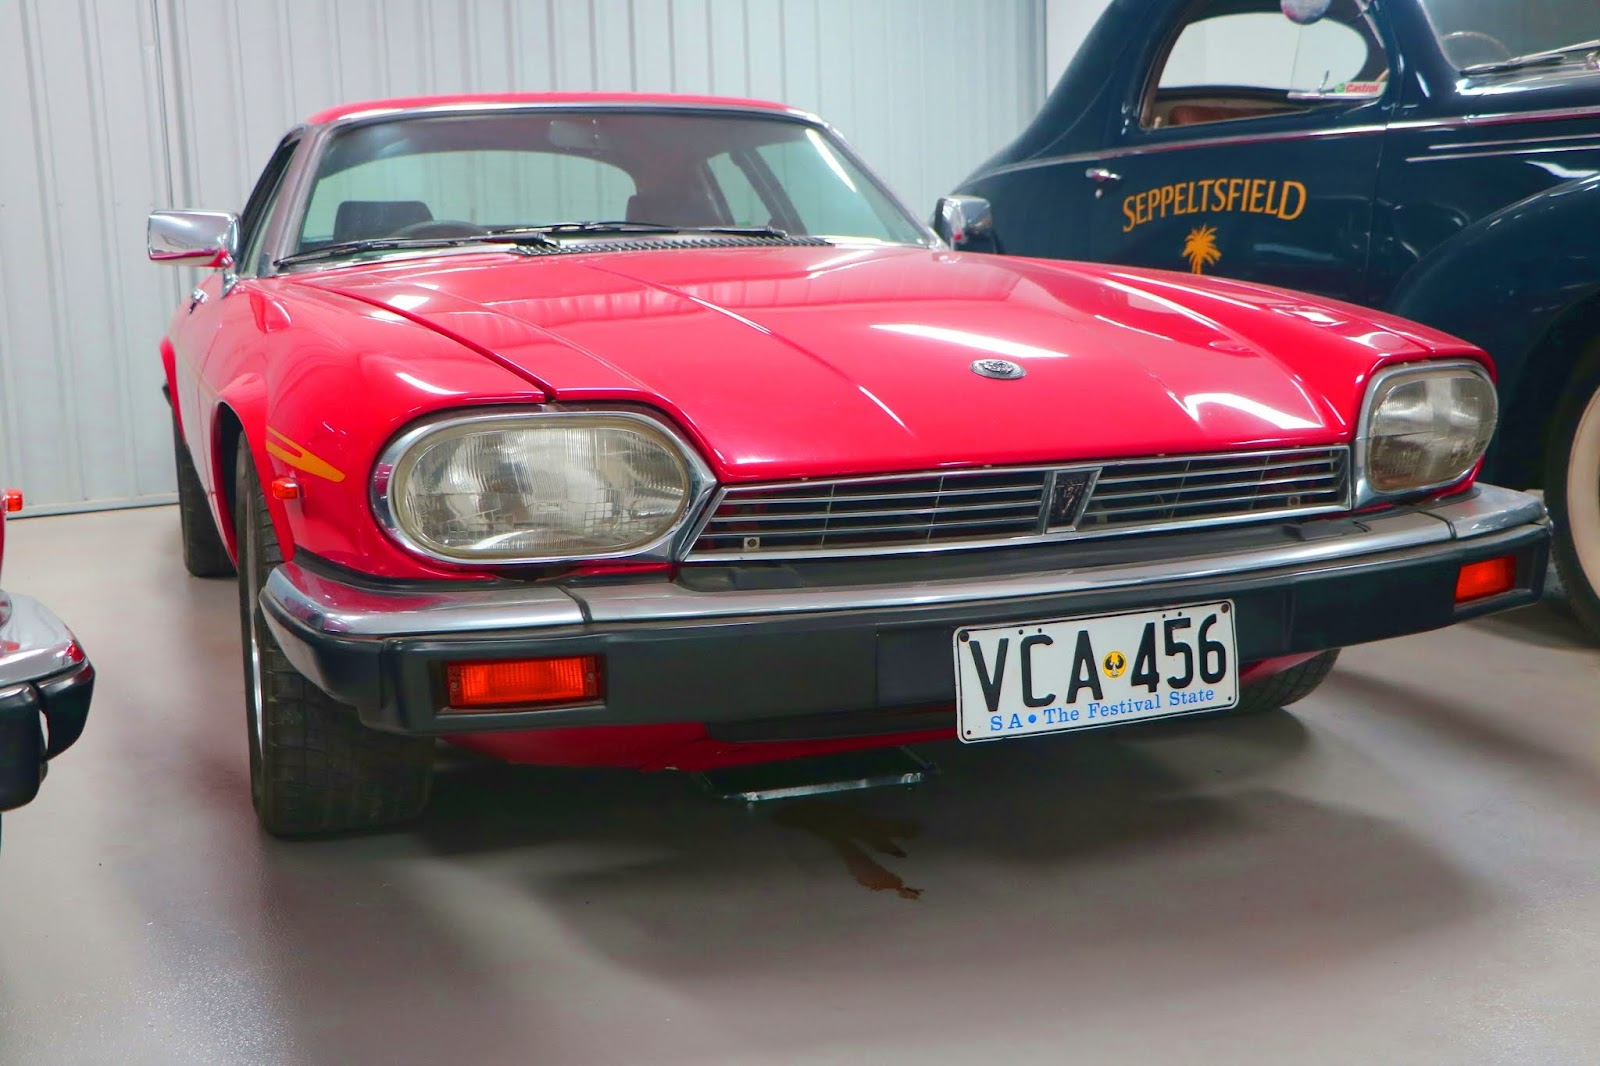 Carl_Lindner_Collection - Jaguar XJ-S Coupe 02.jpg